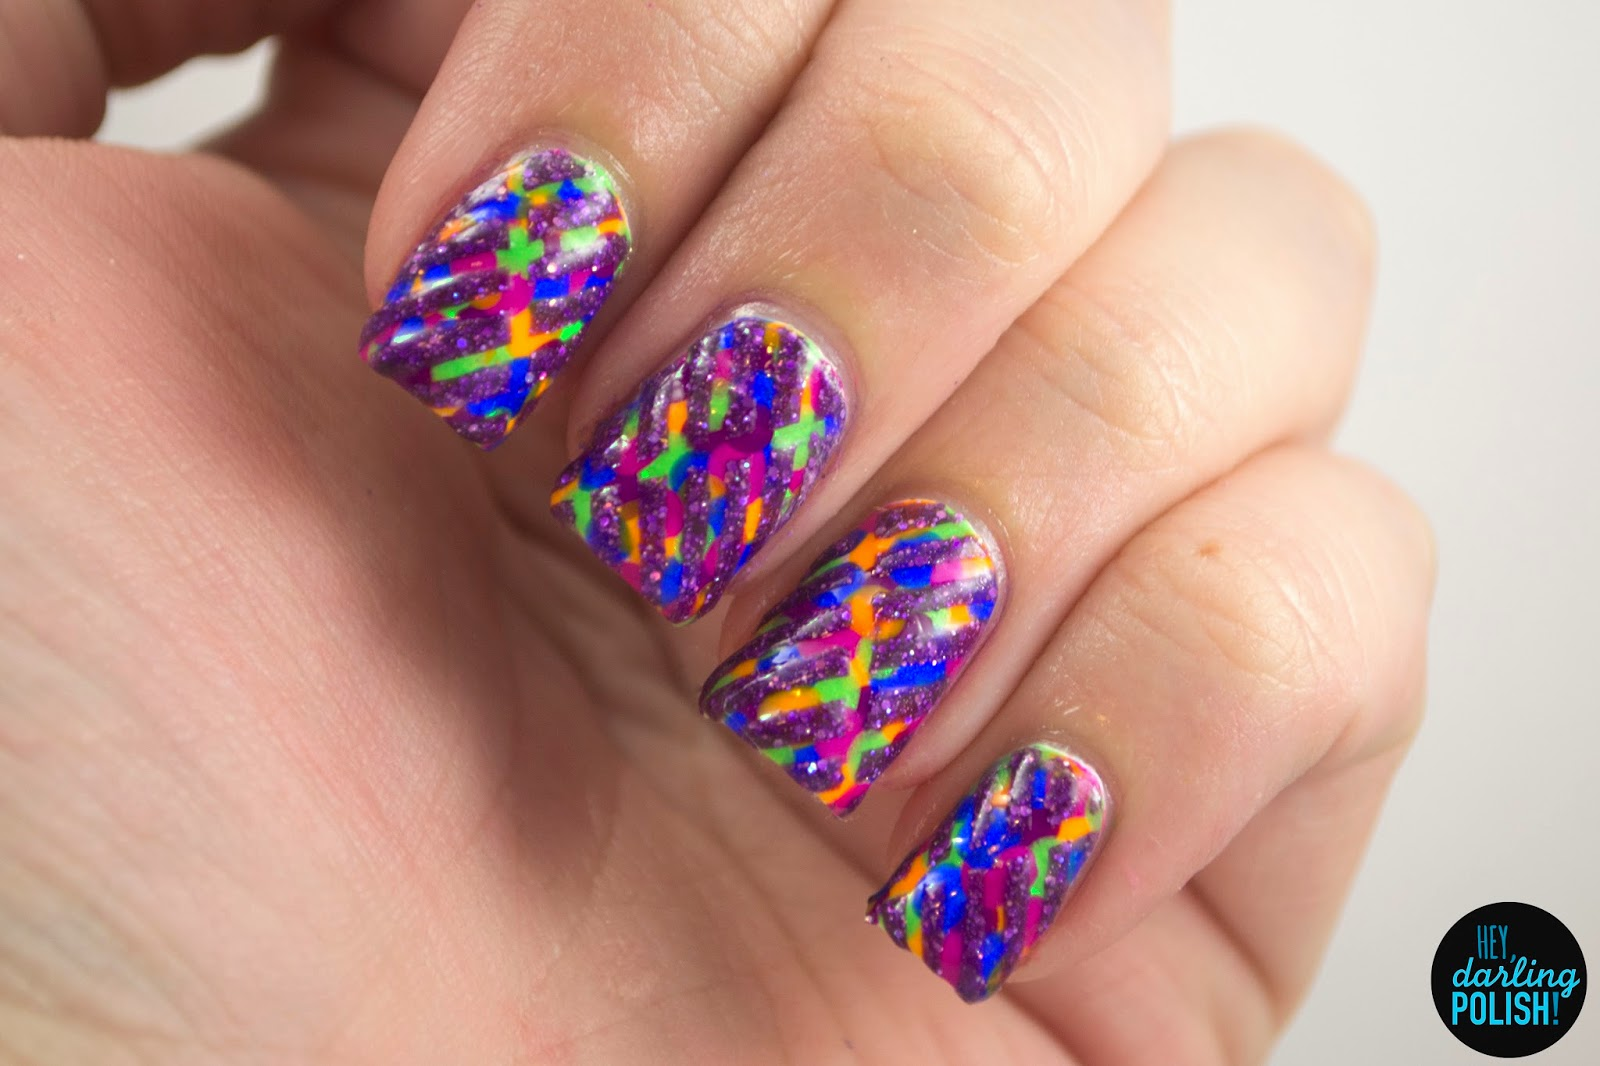 nails, nail art, nail polish, polish, neon, stripes, glitter, hey darling polish, naillinkup, tape